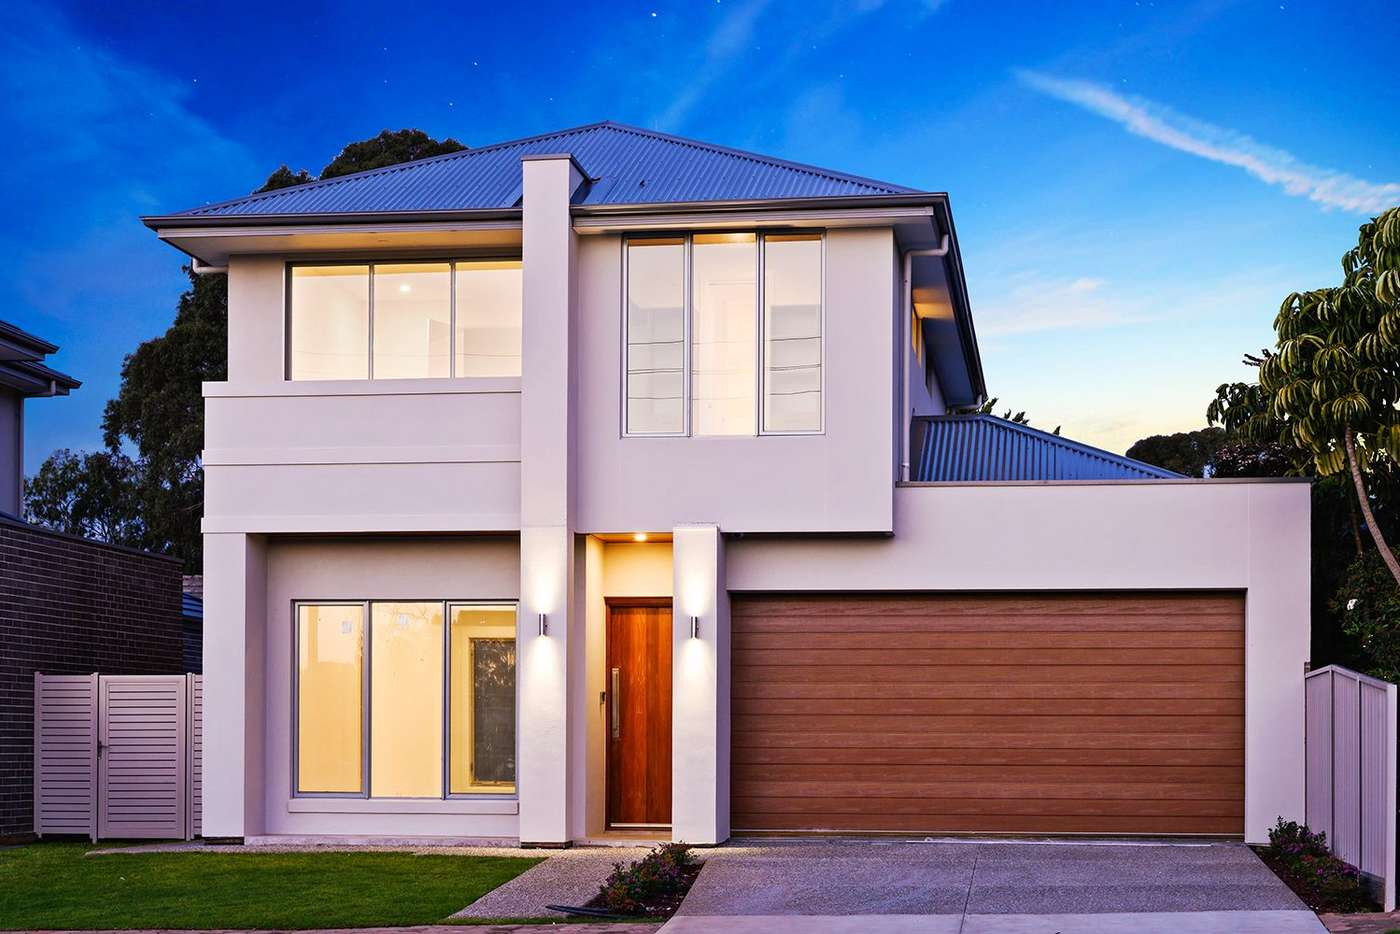 Main view of Homely house listing, 38 Glen Eira Street, Woodville South SA 5011